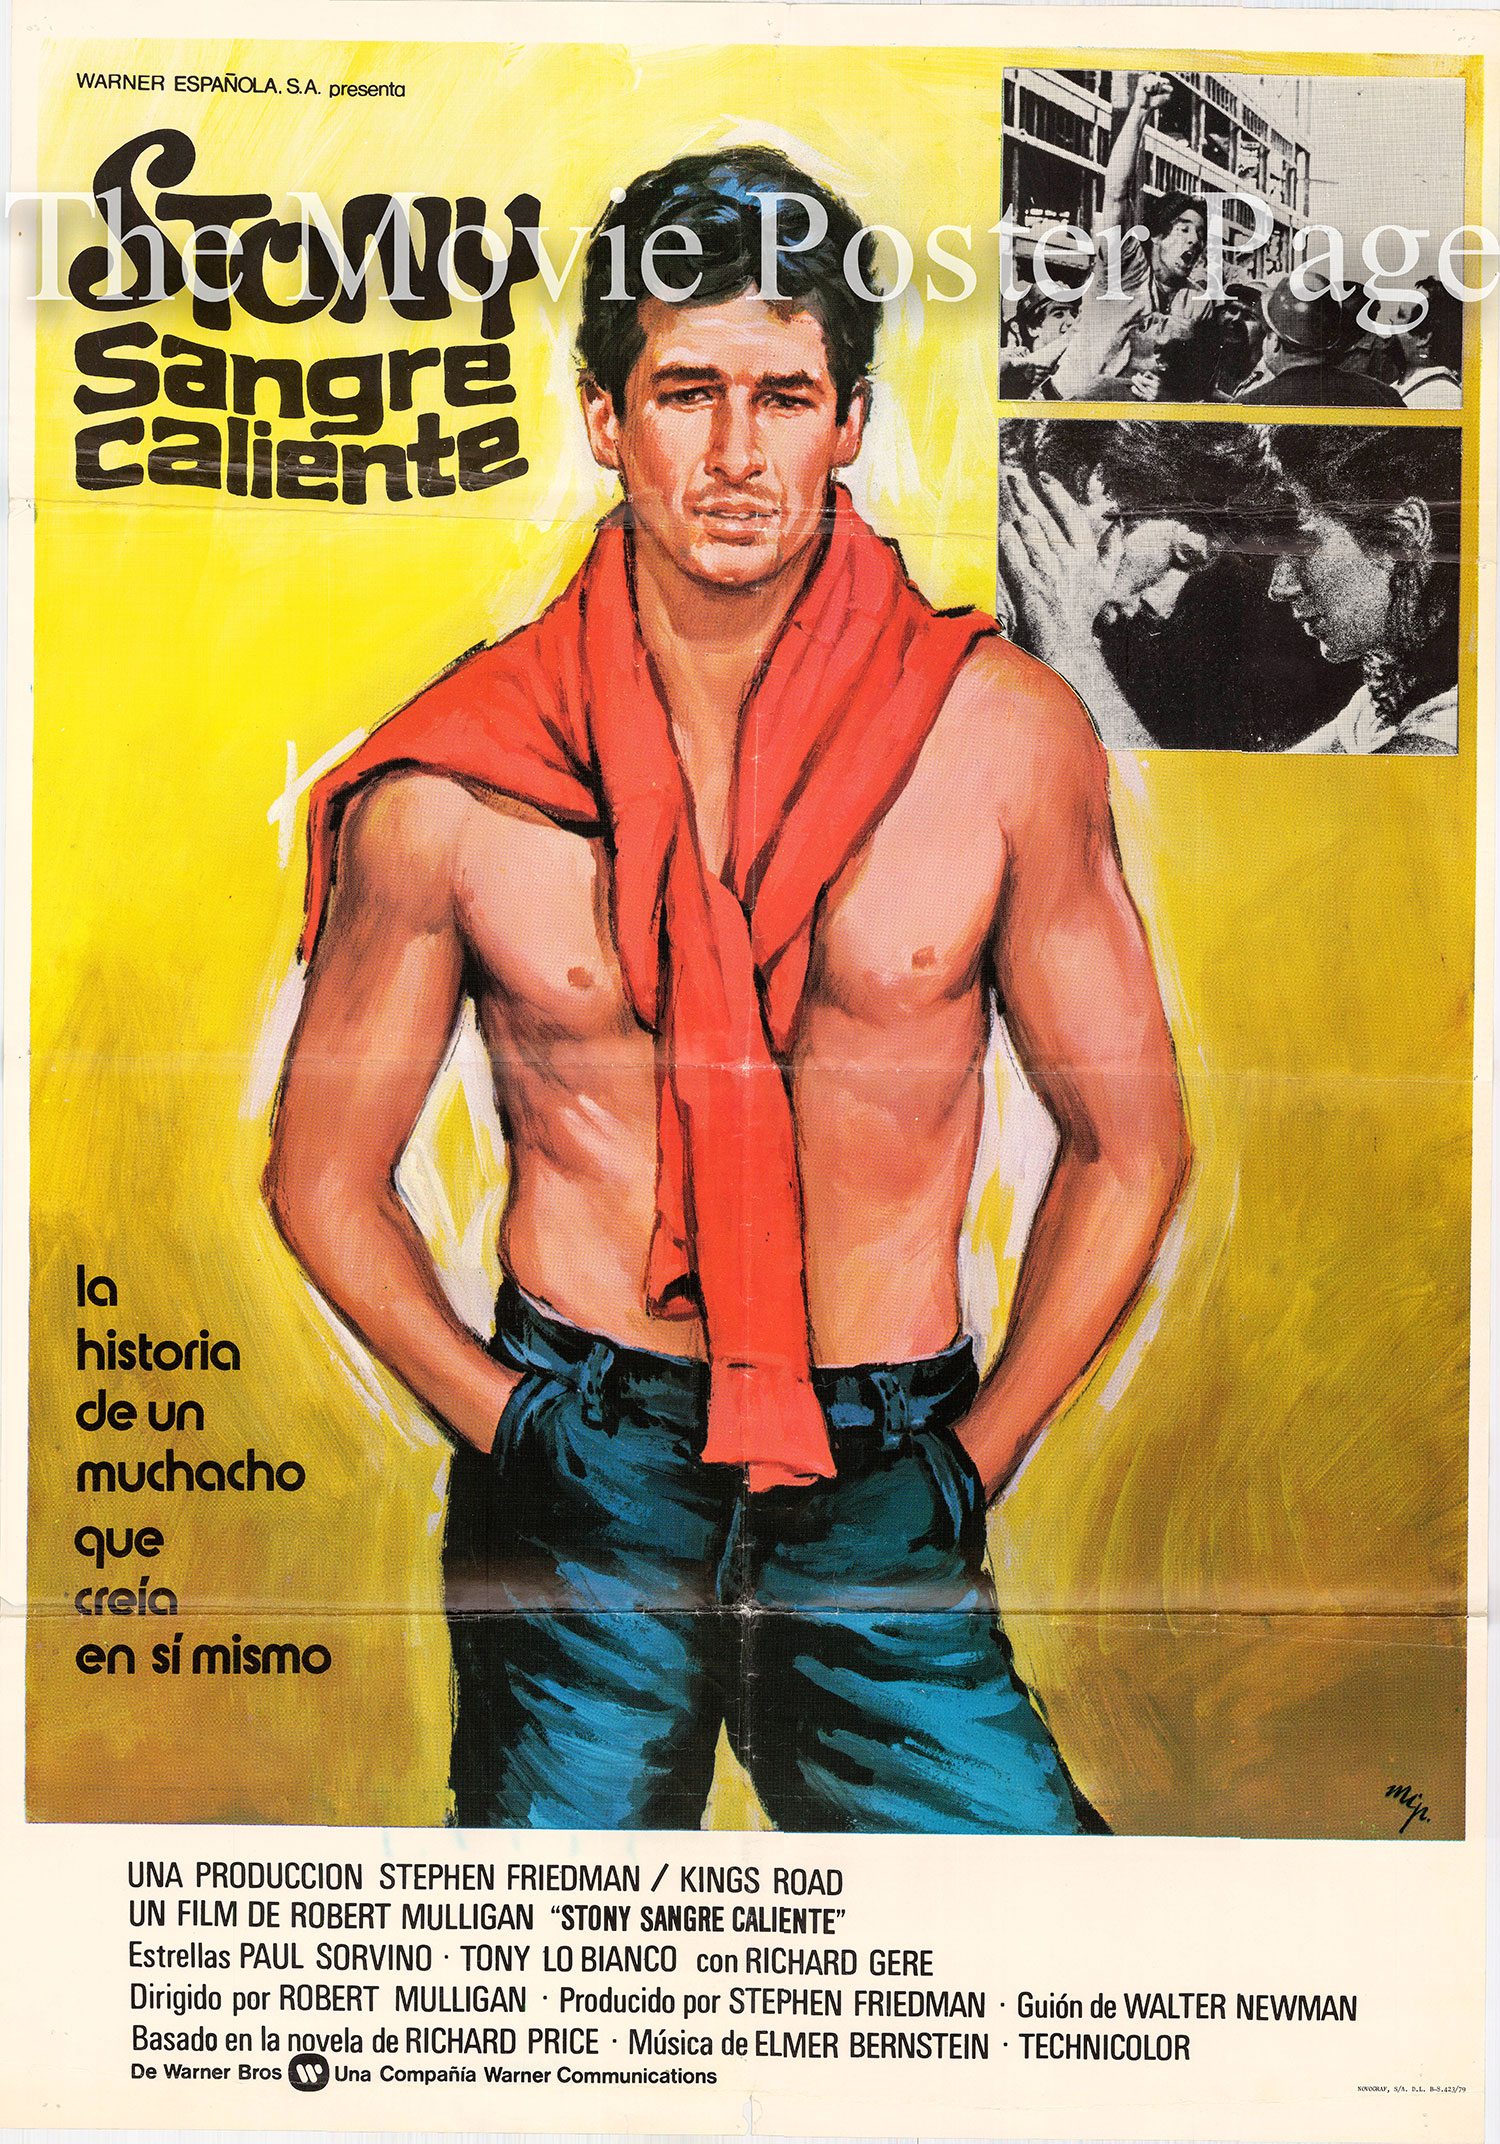 Pictured is a Spanish one-sheet poster for the 1978 Robert Mulligan film Bloodbrothers starring Richard Geere as Stony De Coco.